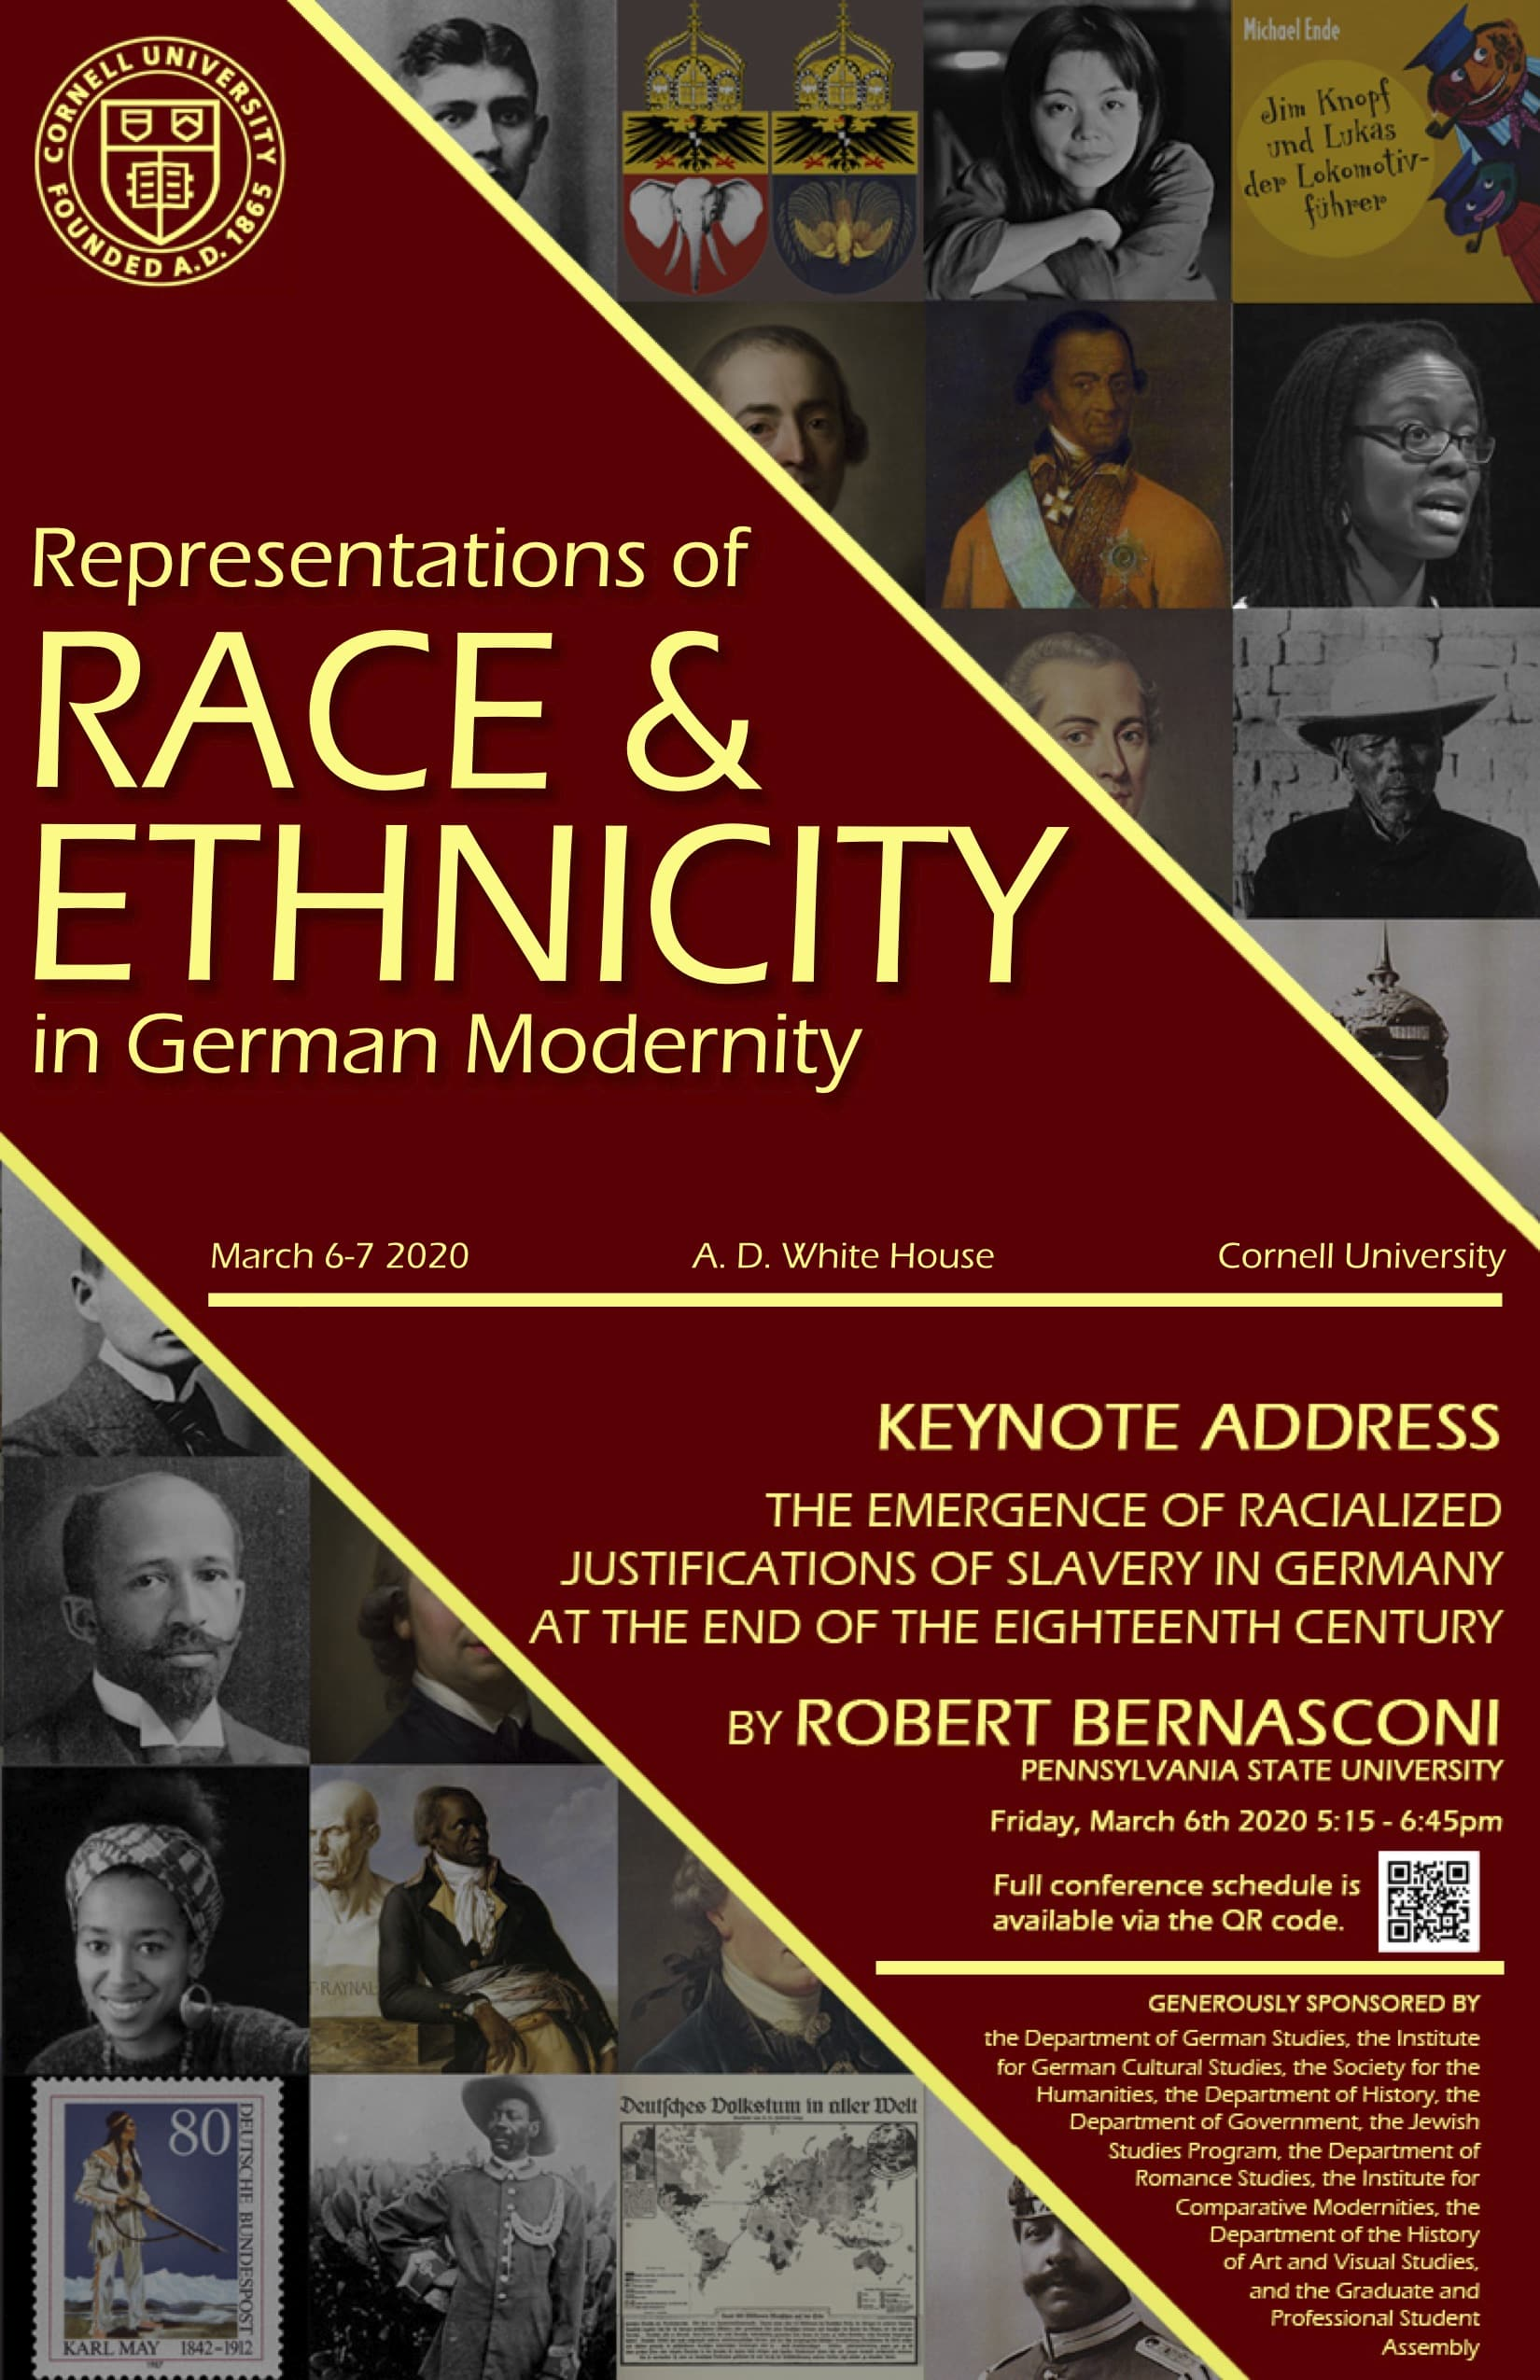 Conference: Representations of Race and Ethnicity in German Modernity on Friday, March 6th and Saturday, March 7th